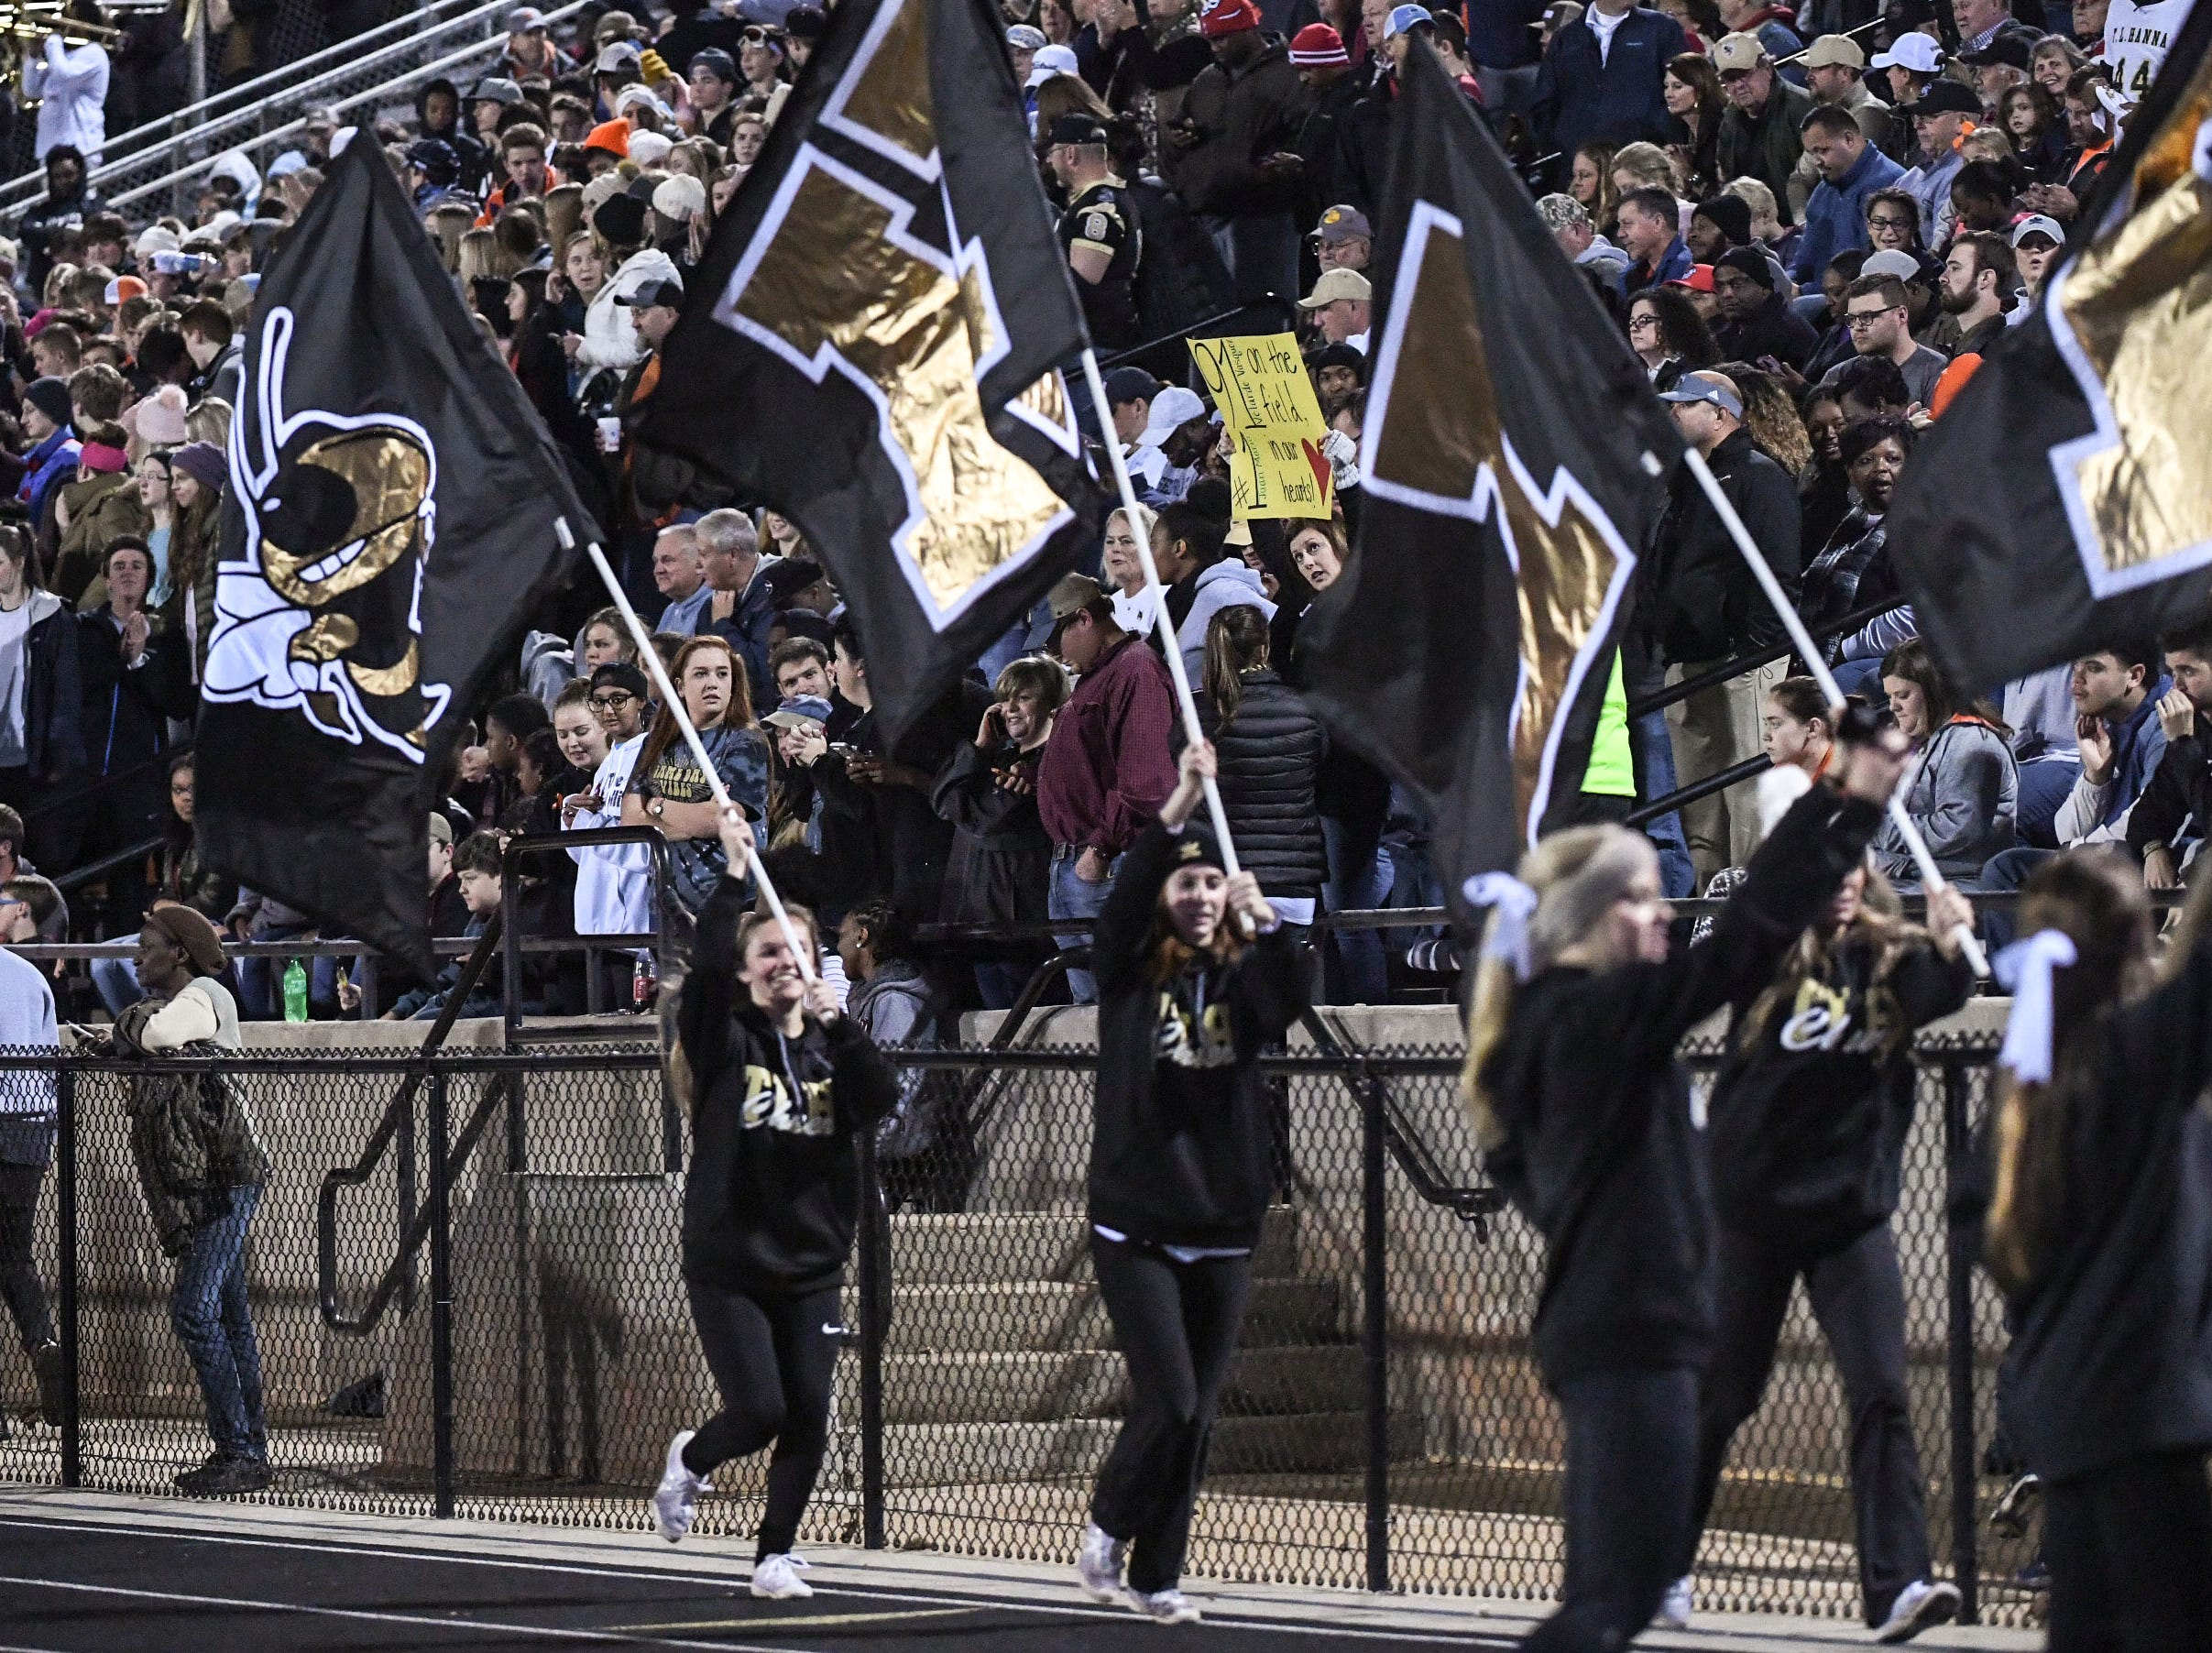 TL Hanna High School cheerleaders carry flags during the first quarter of the Class AAAAA state playoffs at TL Hanna High School in Anderson on Friday, November 30, 2018.